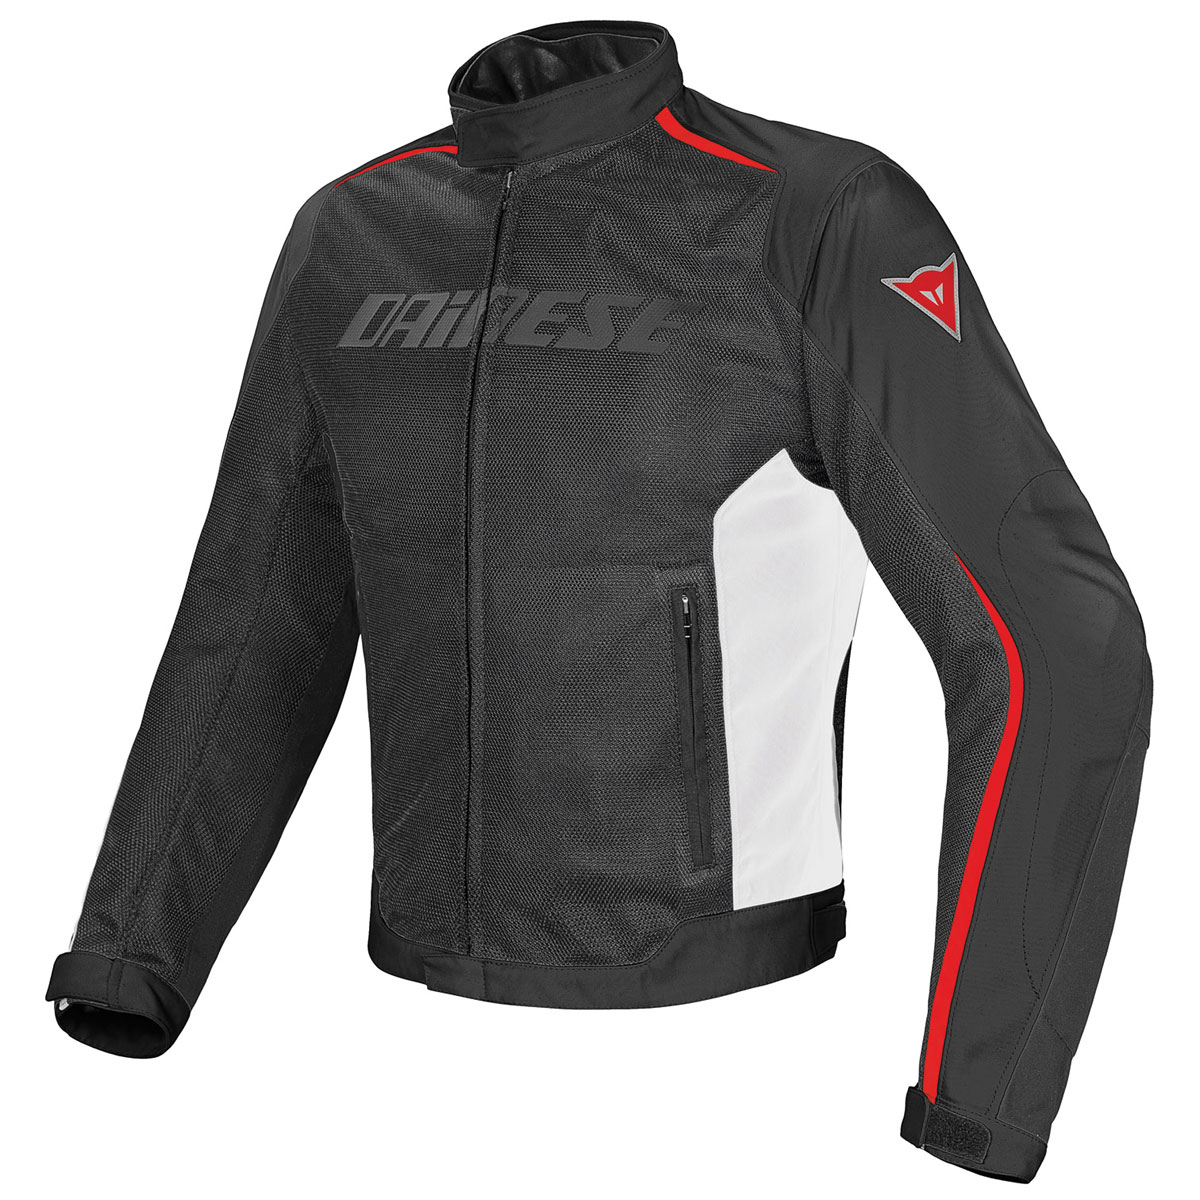 Dainese Men's Hydra Flux D-Dry Black/White/Red Jacket